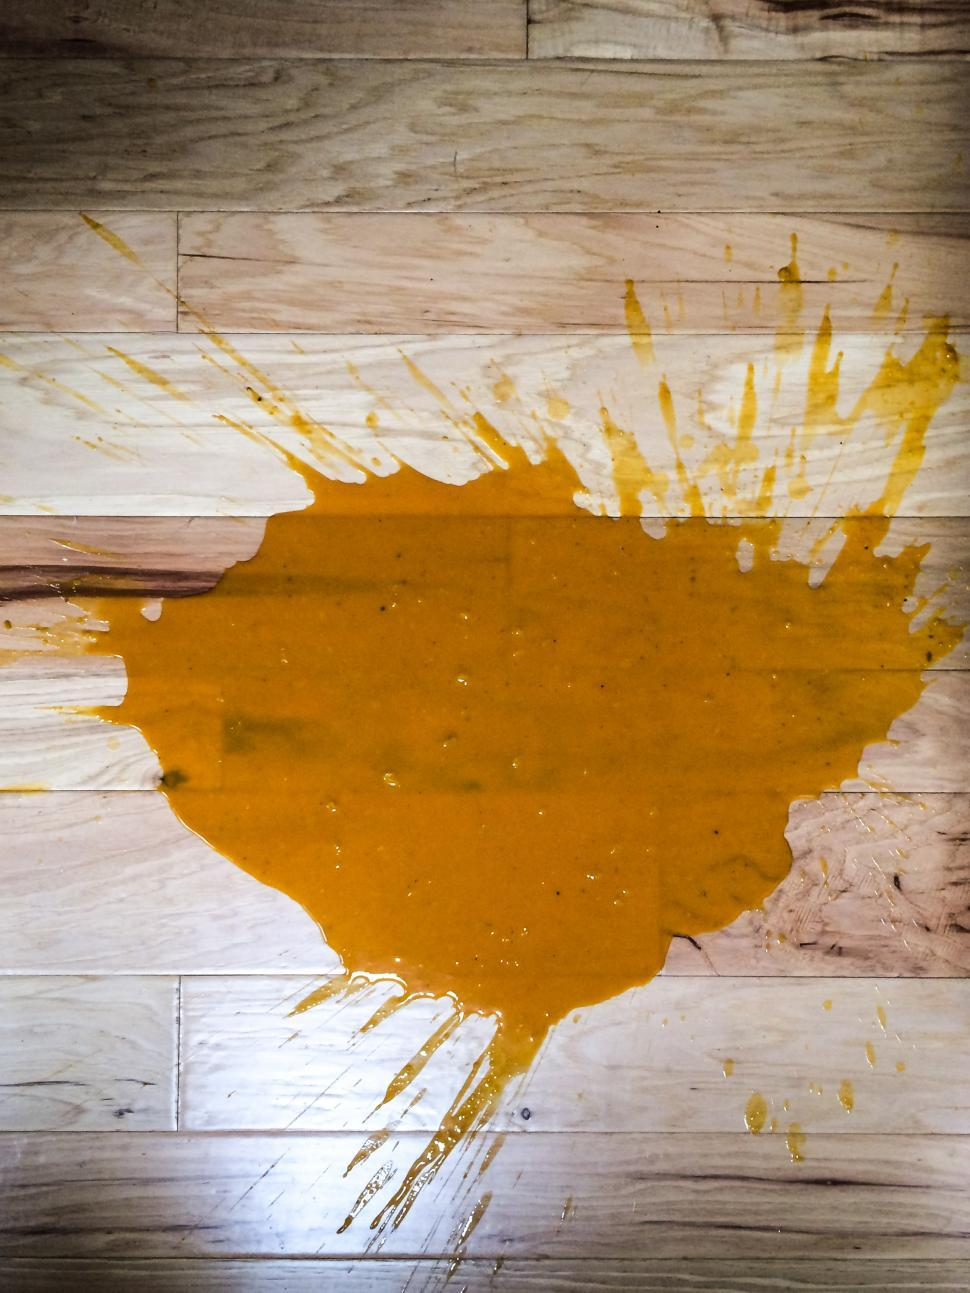 Download Free Stock Photo of Spill on wooden floor